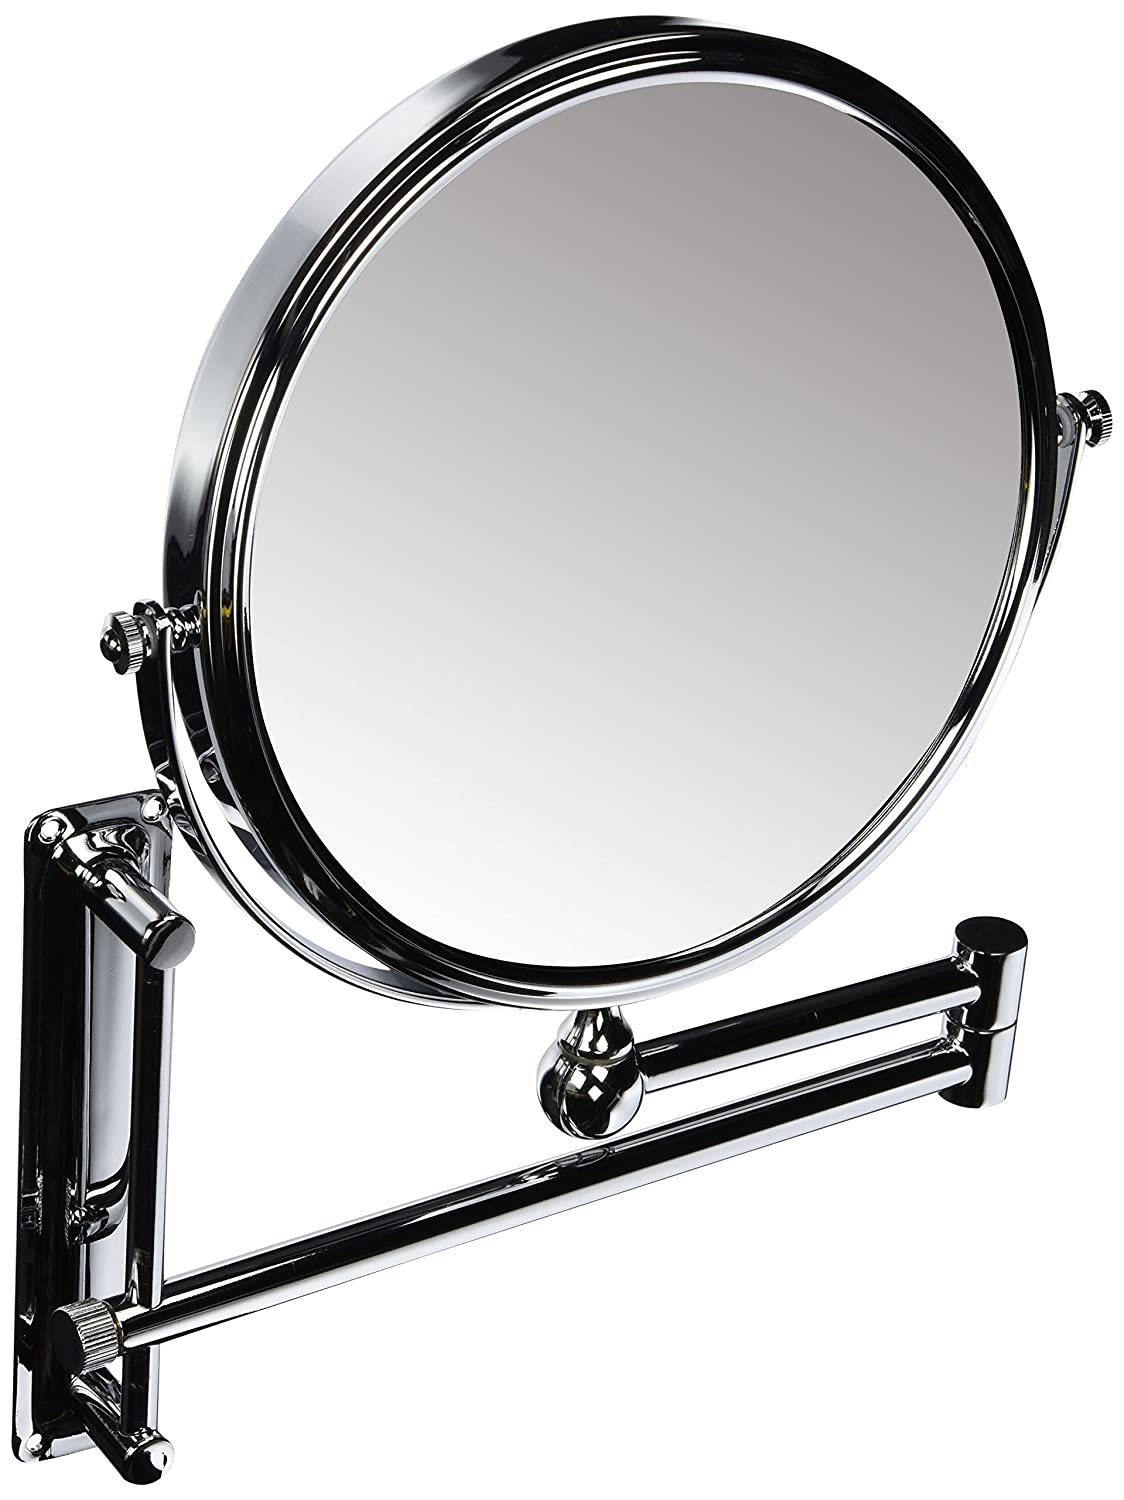 DANIELLE ADJUSTABLE HEIGHT, 2-SIDED WALL MOUNT EXTENDABLE MAKEUP MIRROR, 10X MAGNIFICATION, CHROME